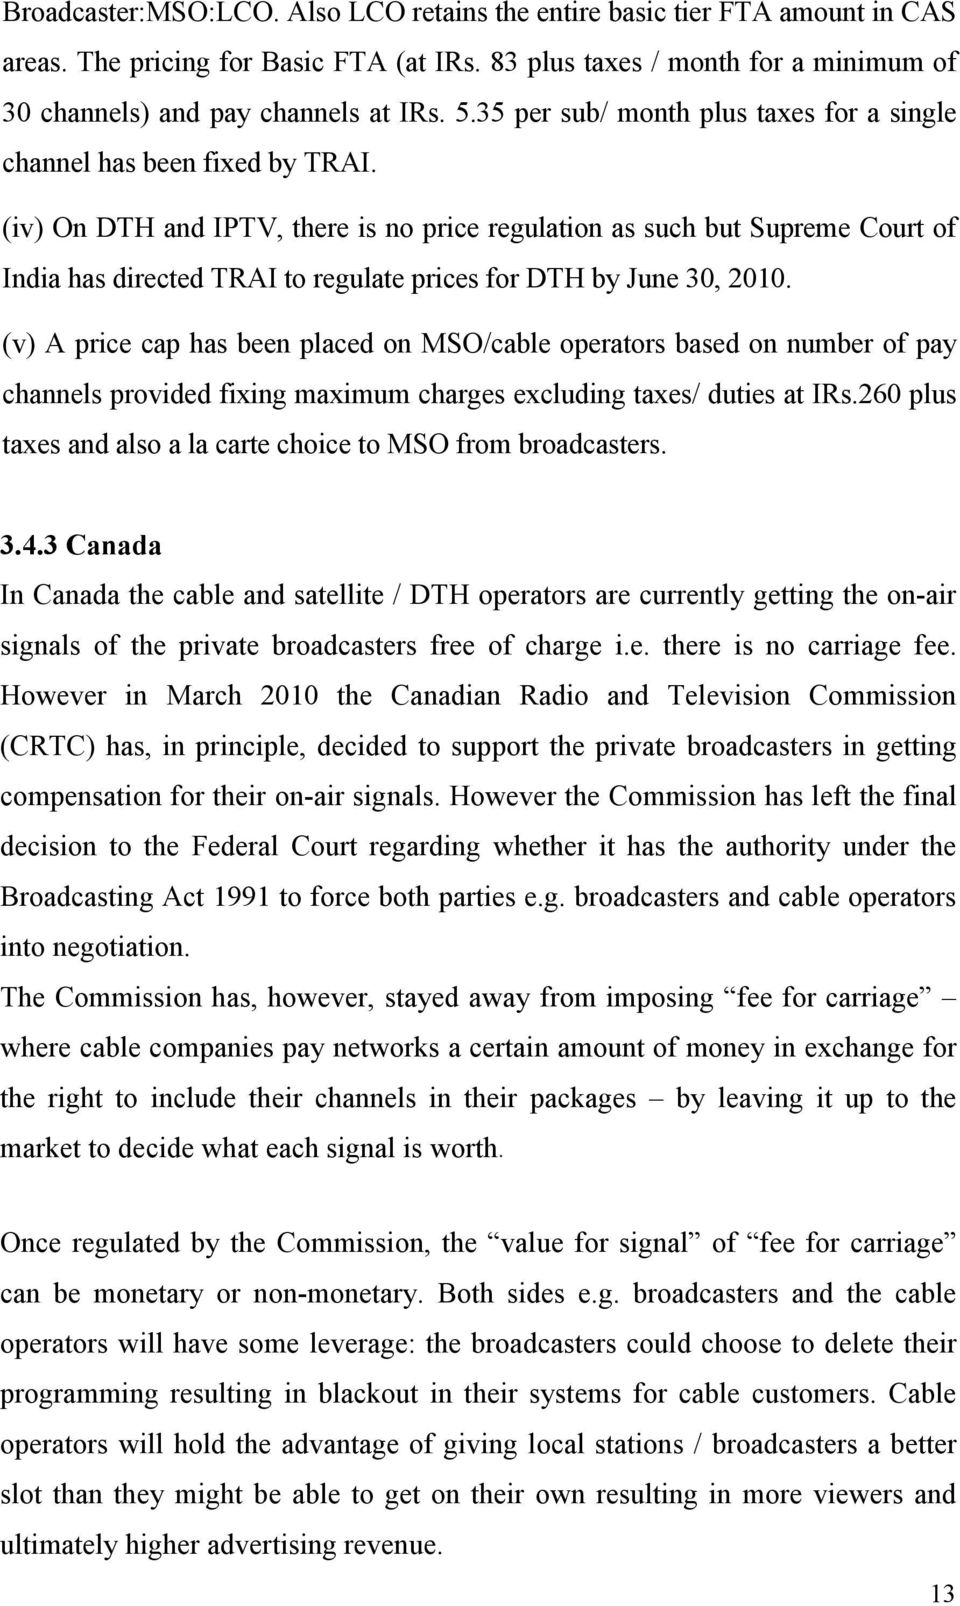 (iv) On DTH and IPTV, there is no price regulation as such but Supreme Court of India has directed TRAI to regulate prices for DTH by June 30, 2010.